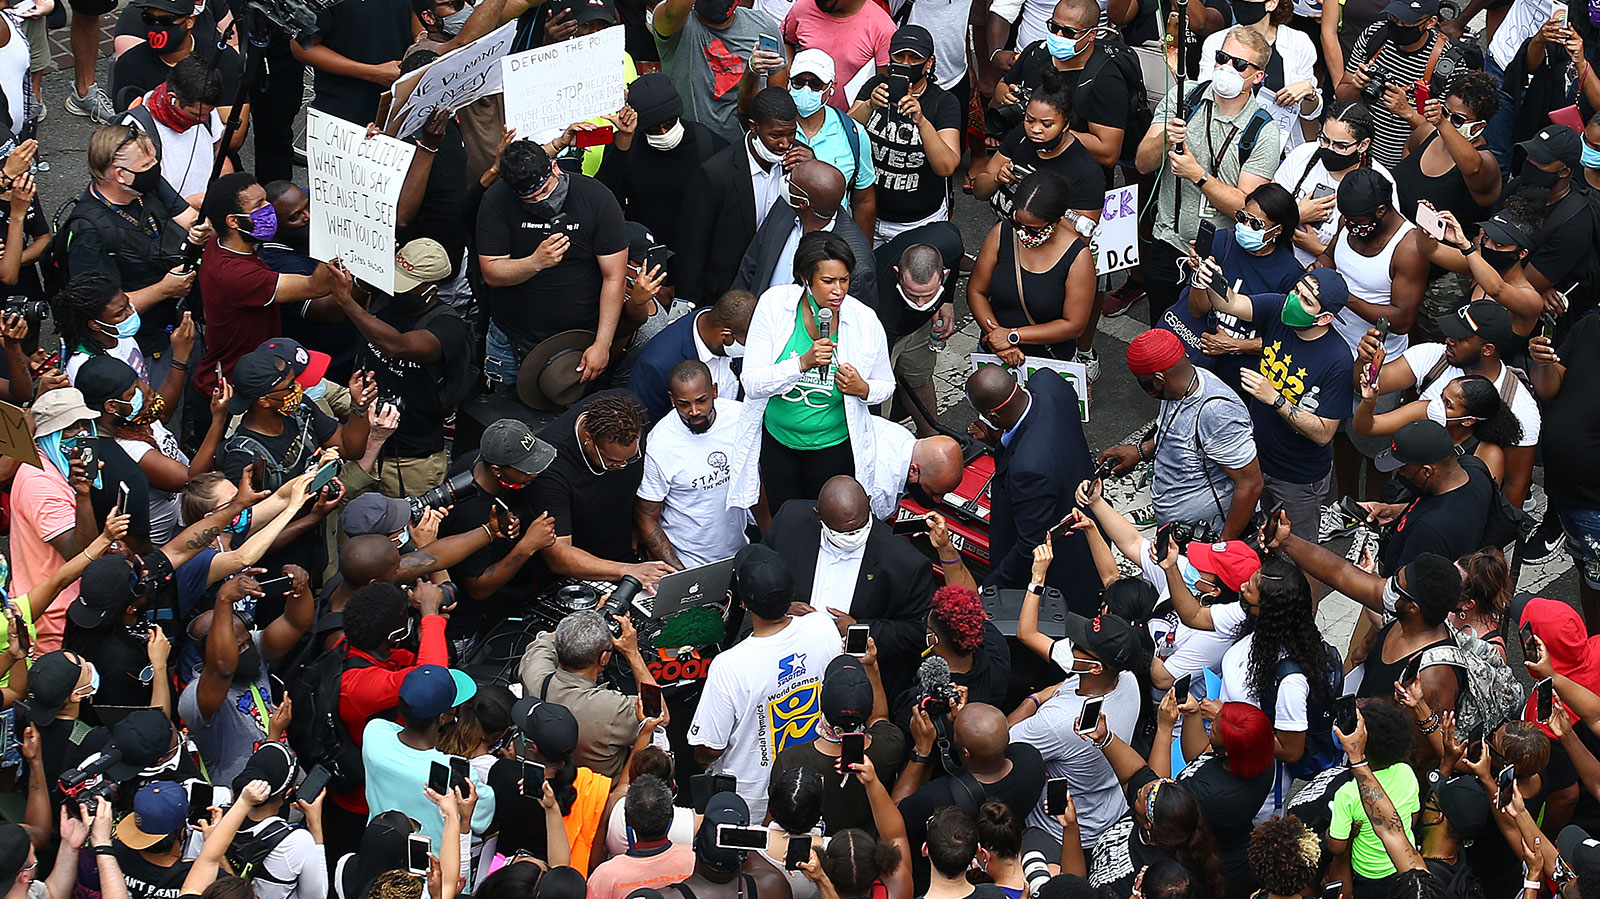 District of Columbia Mayor Muriel Bowser (C) speaks to demonstrators gathered on the newly named Black Lives Plaza during a peaceful protest against police brutality and racism in Washington, DC on June 6.